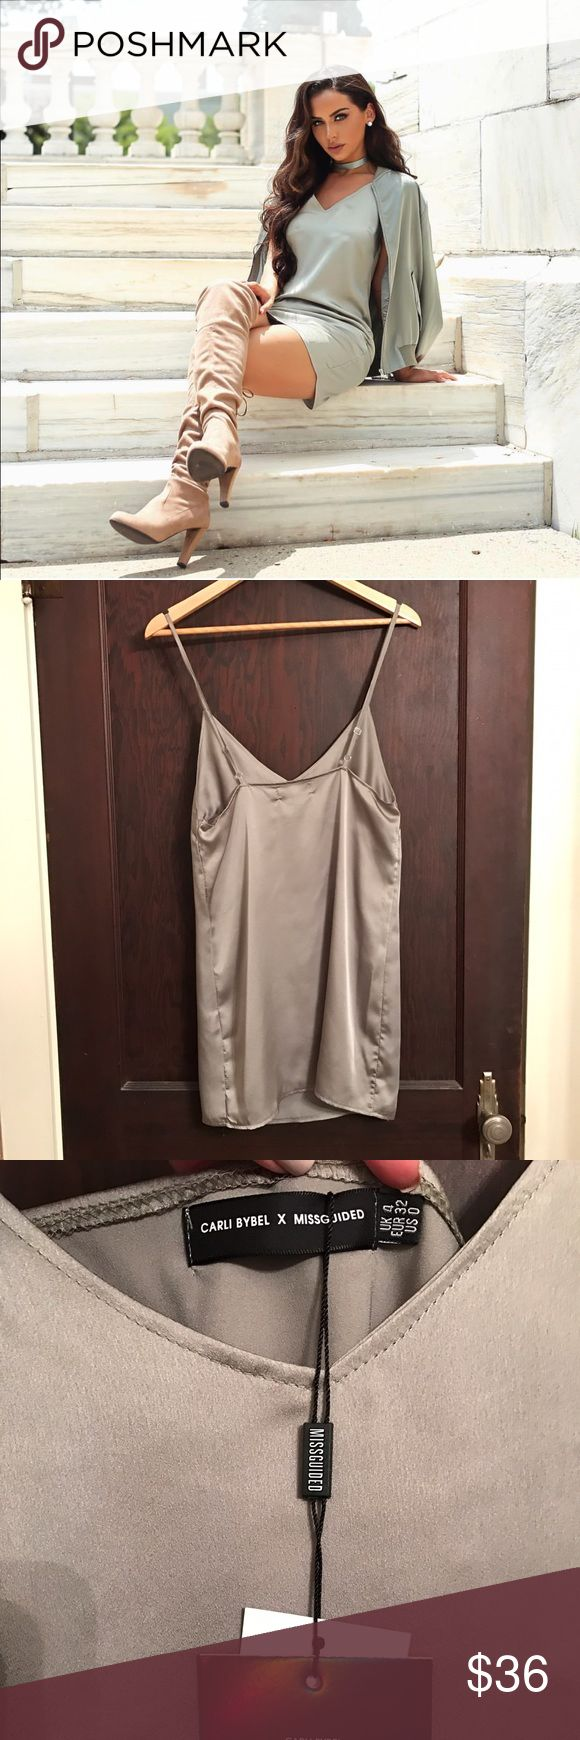 Carli Bybel x Missguided Dress New with tags. Pistachio green. Adjustable straps, which is good for length. Silk material. New with tags. Never worn. Missguided Dresses Mini